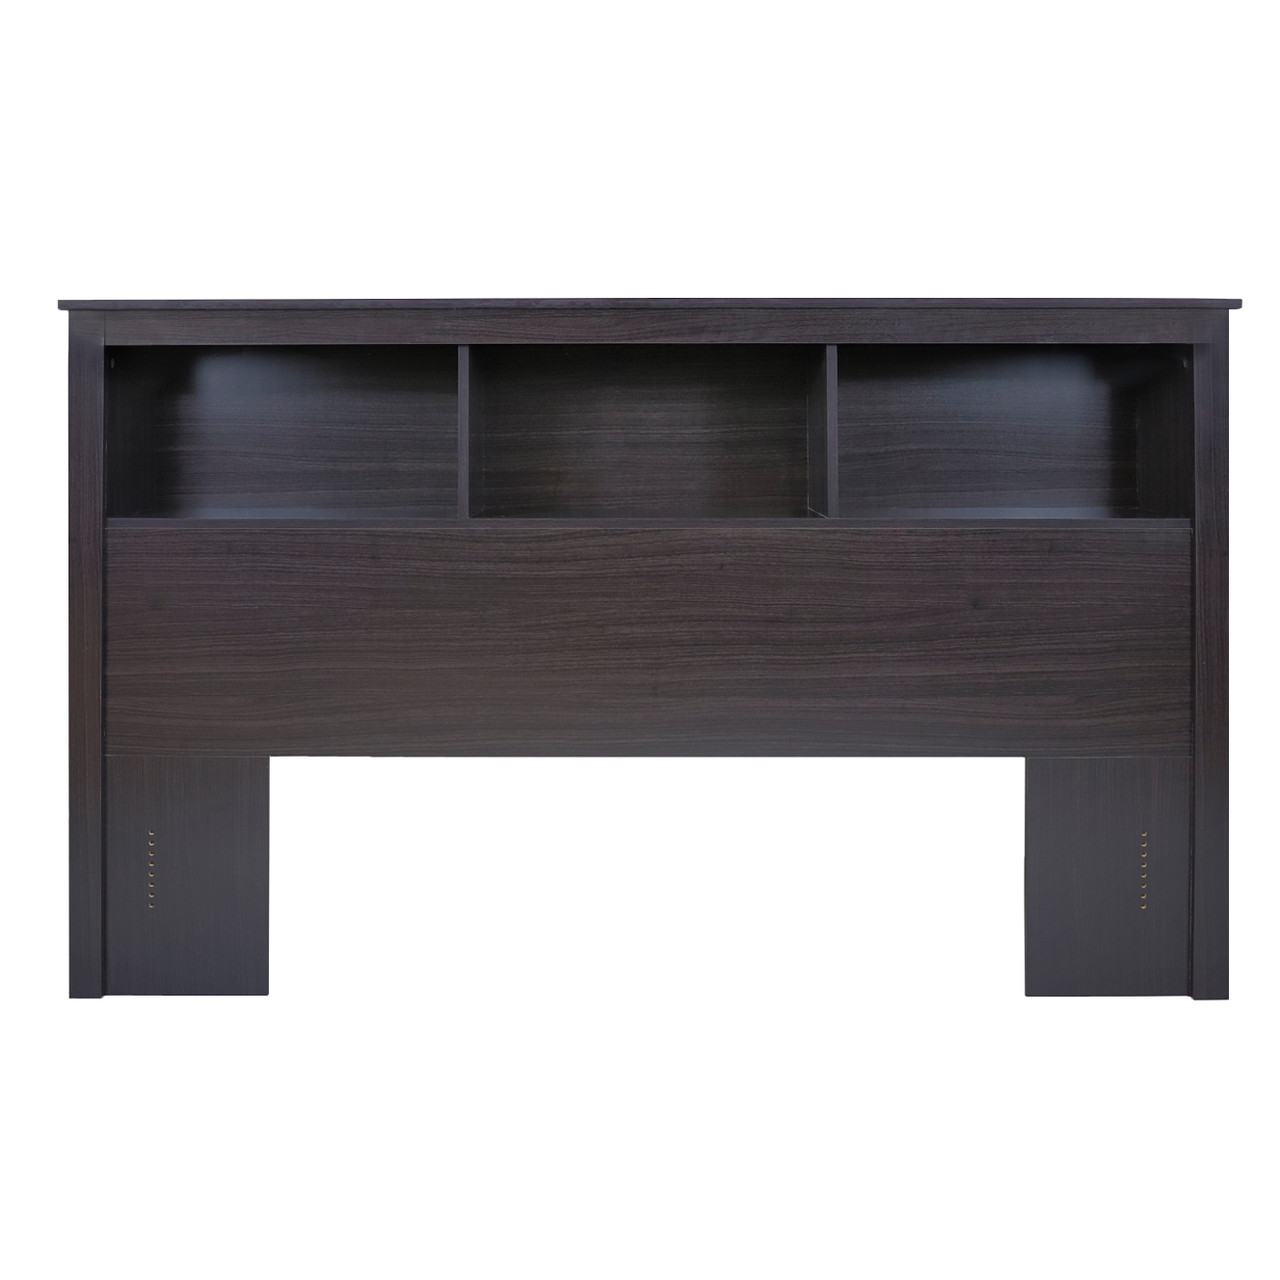 Cap Living Wood Bookcase Headboard With Storage Bedroom Bookcase Headboard Queen Size Espresso